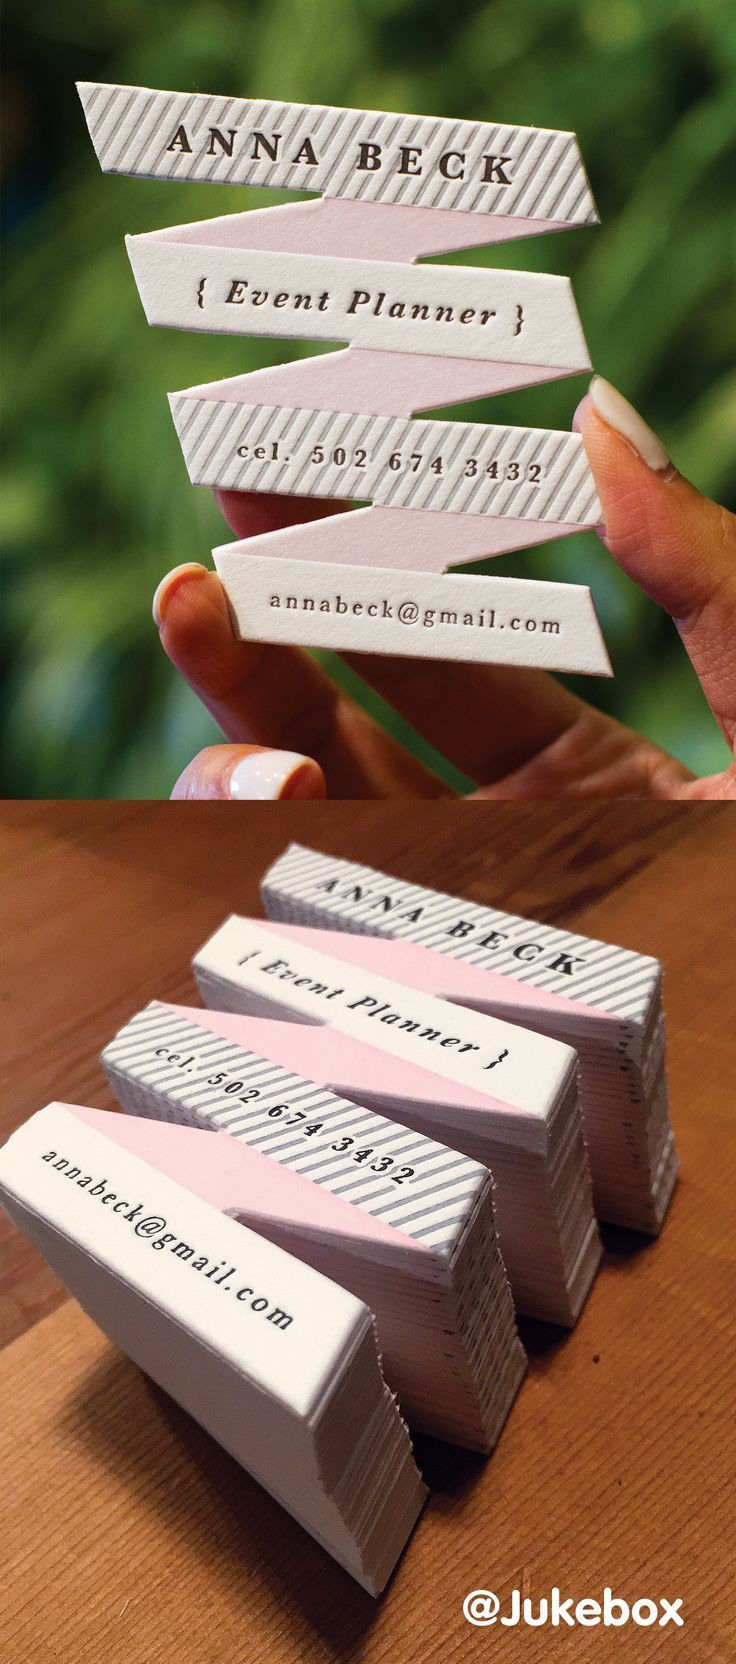 Best 25+ Awesome business cards ideas on Pinterest | Unique ...